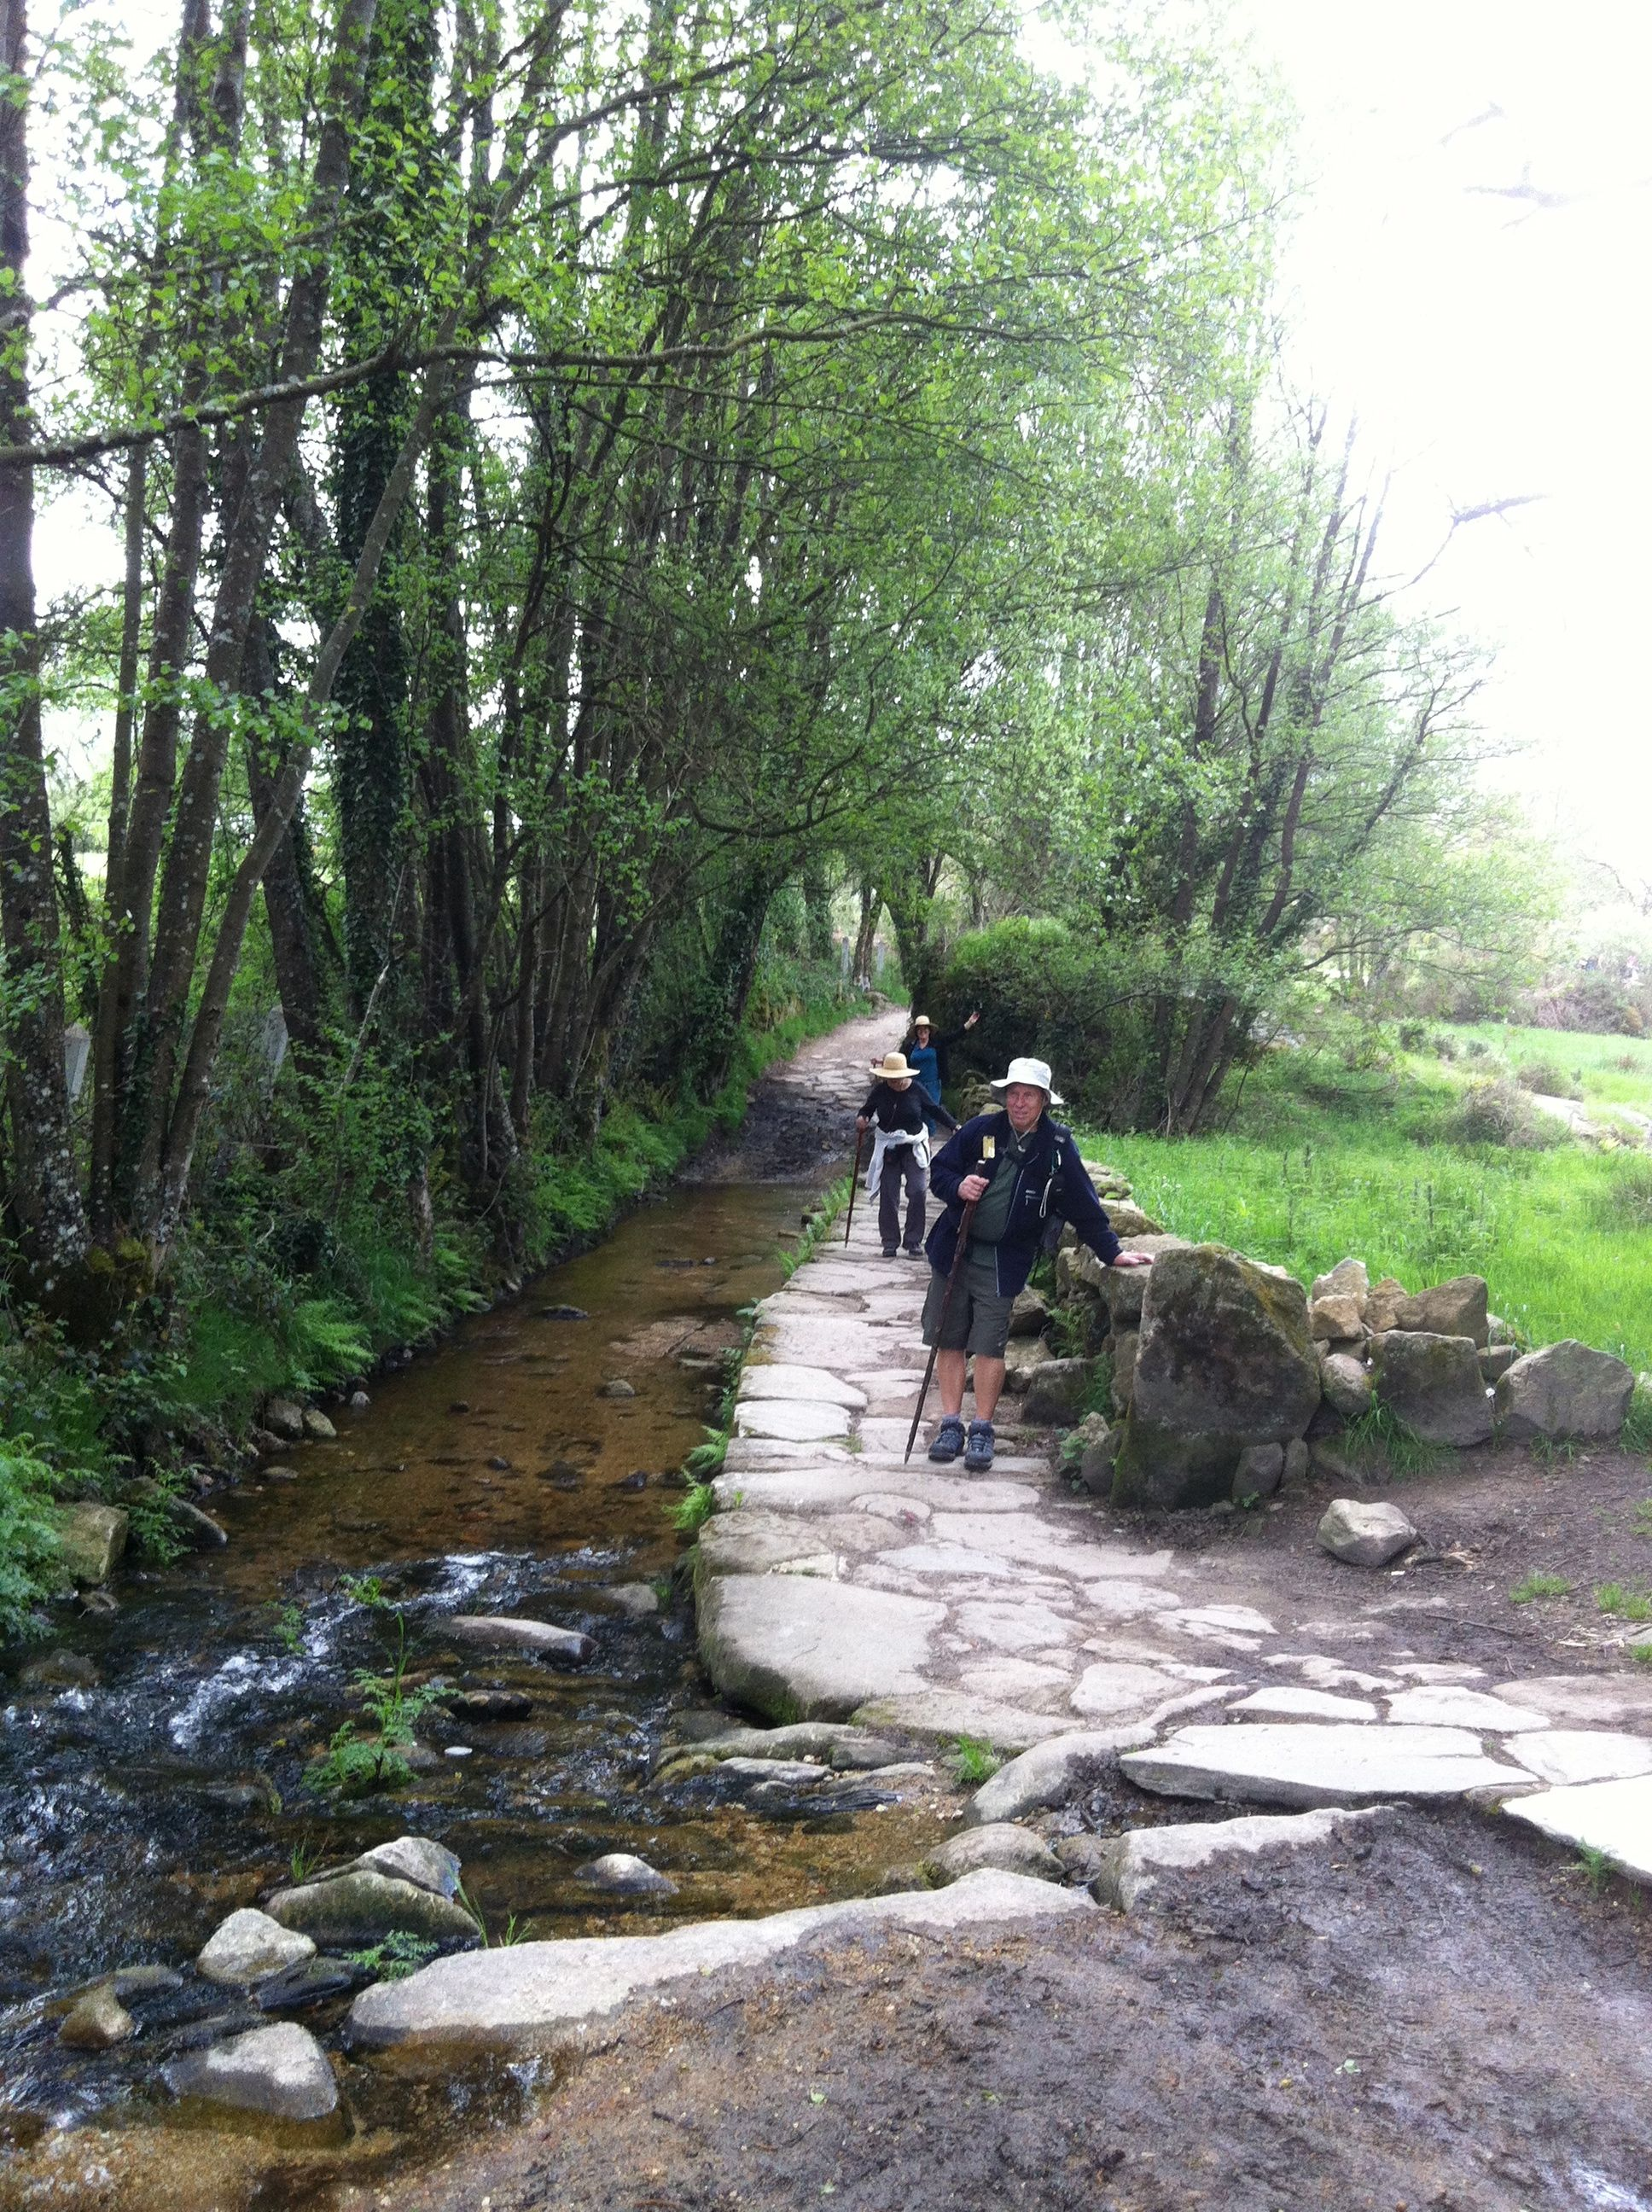 On the Camino!